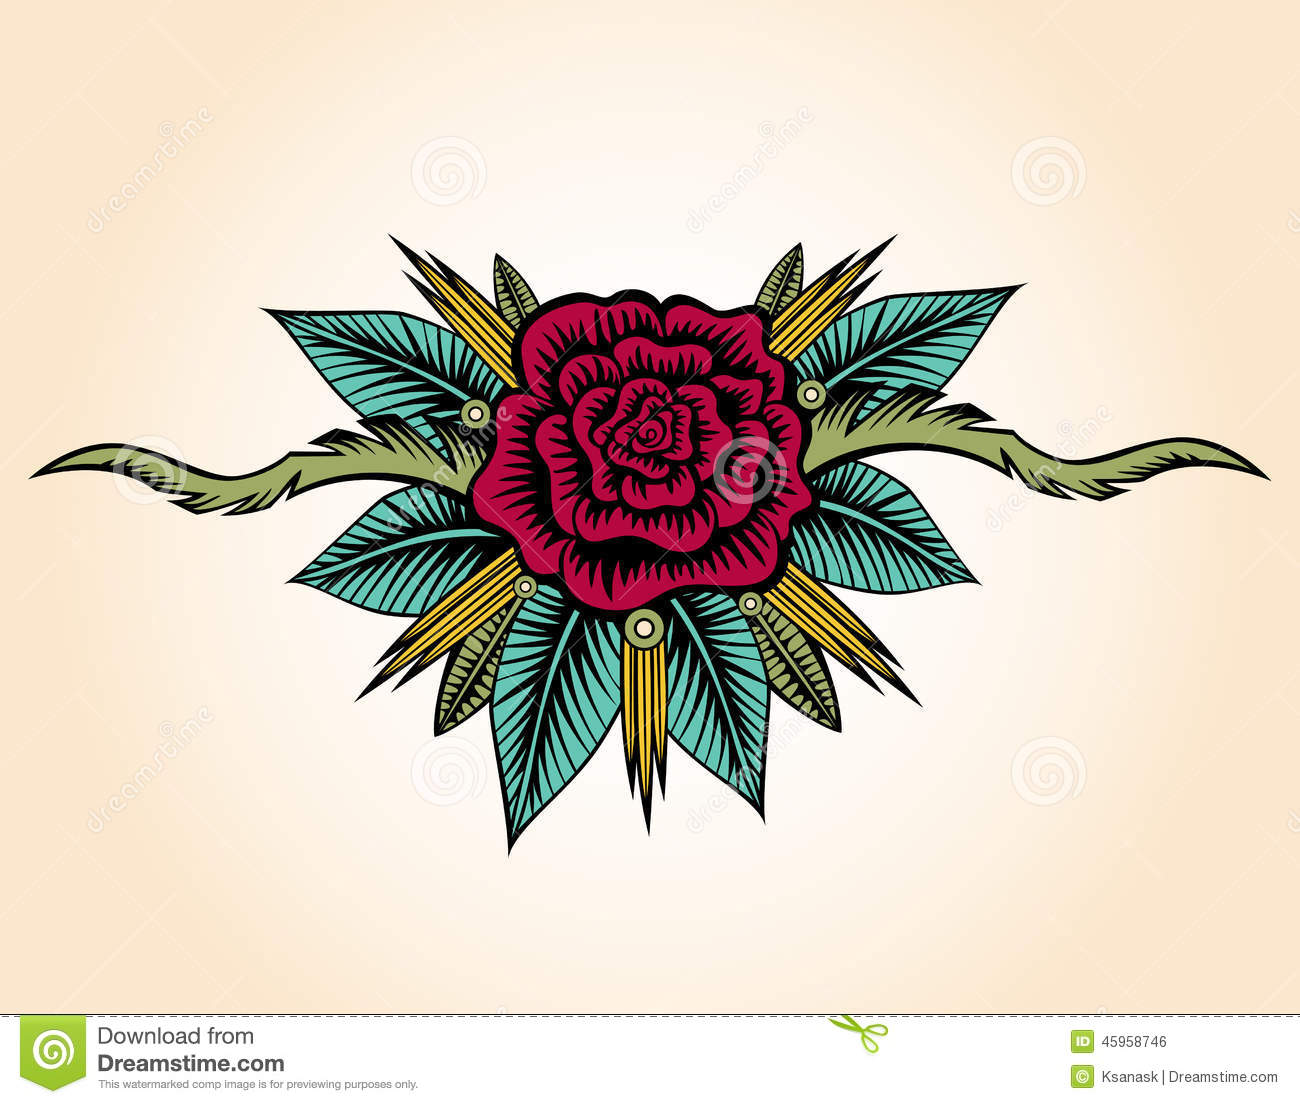 Abstracte Rose And Thorns Tattoo Vector Illustratie Illustratie